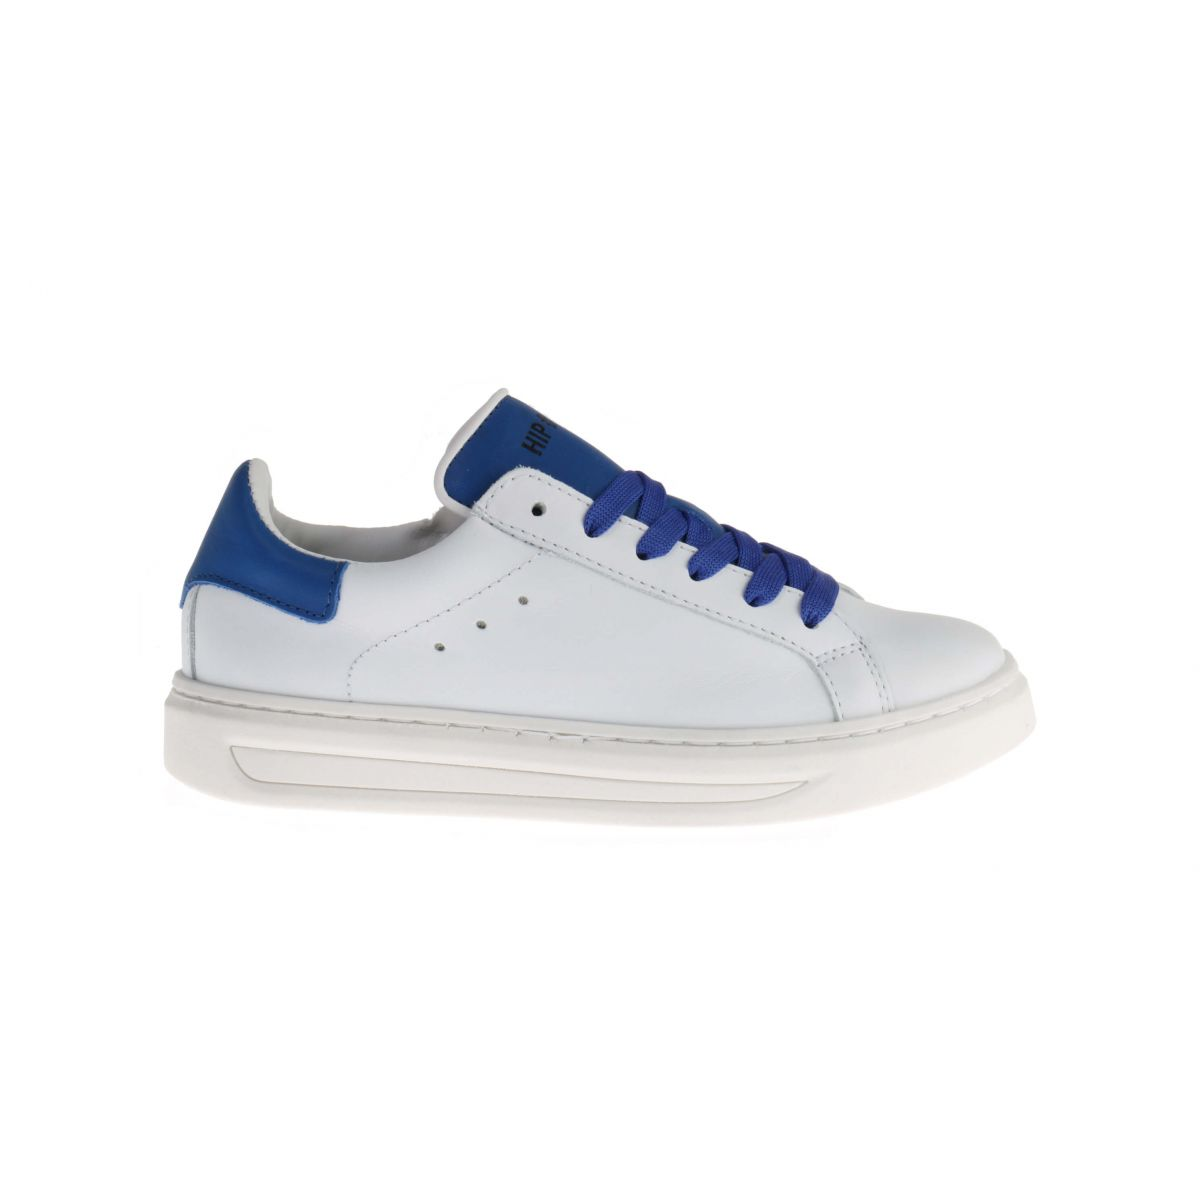 HIP H1690 Sneakers Wit Blauw